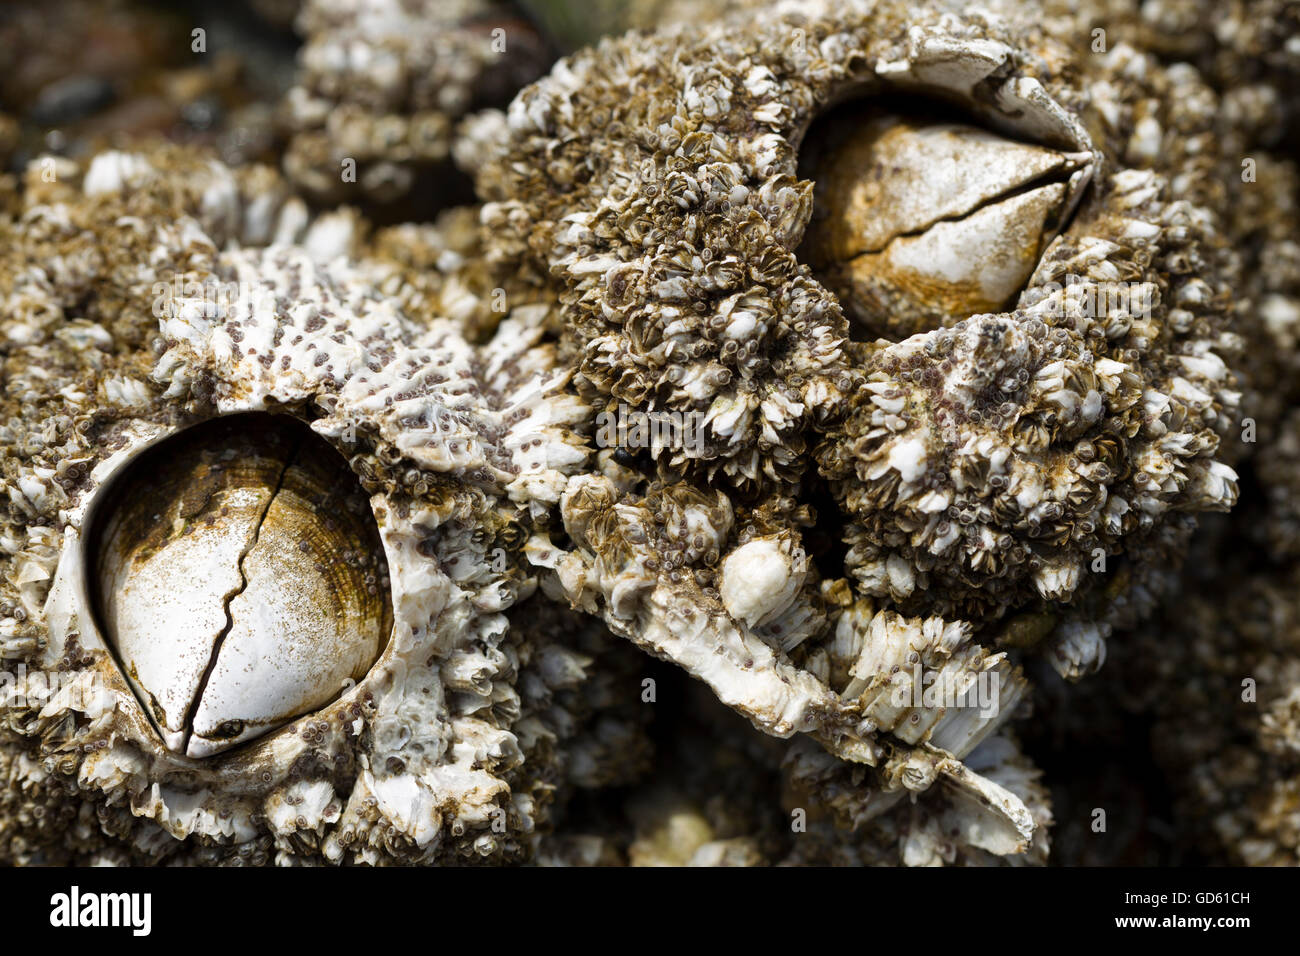 Close up of barnacles. - Stock Image